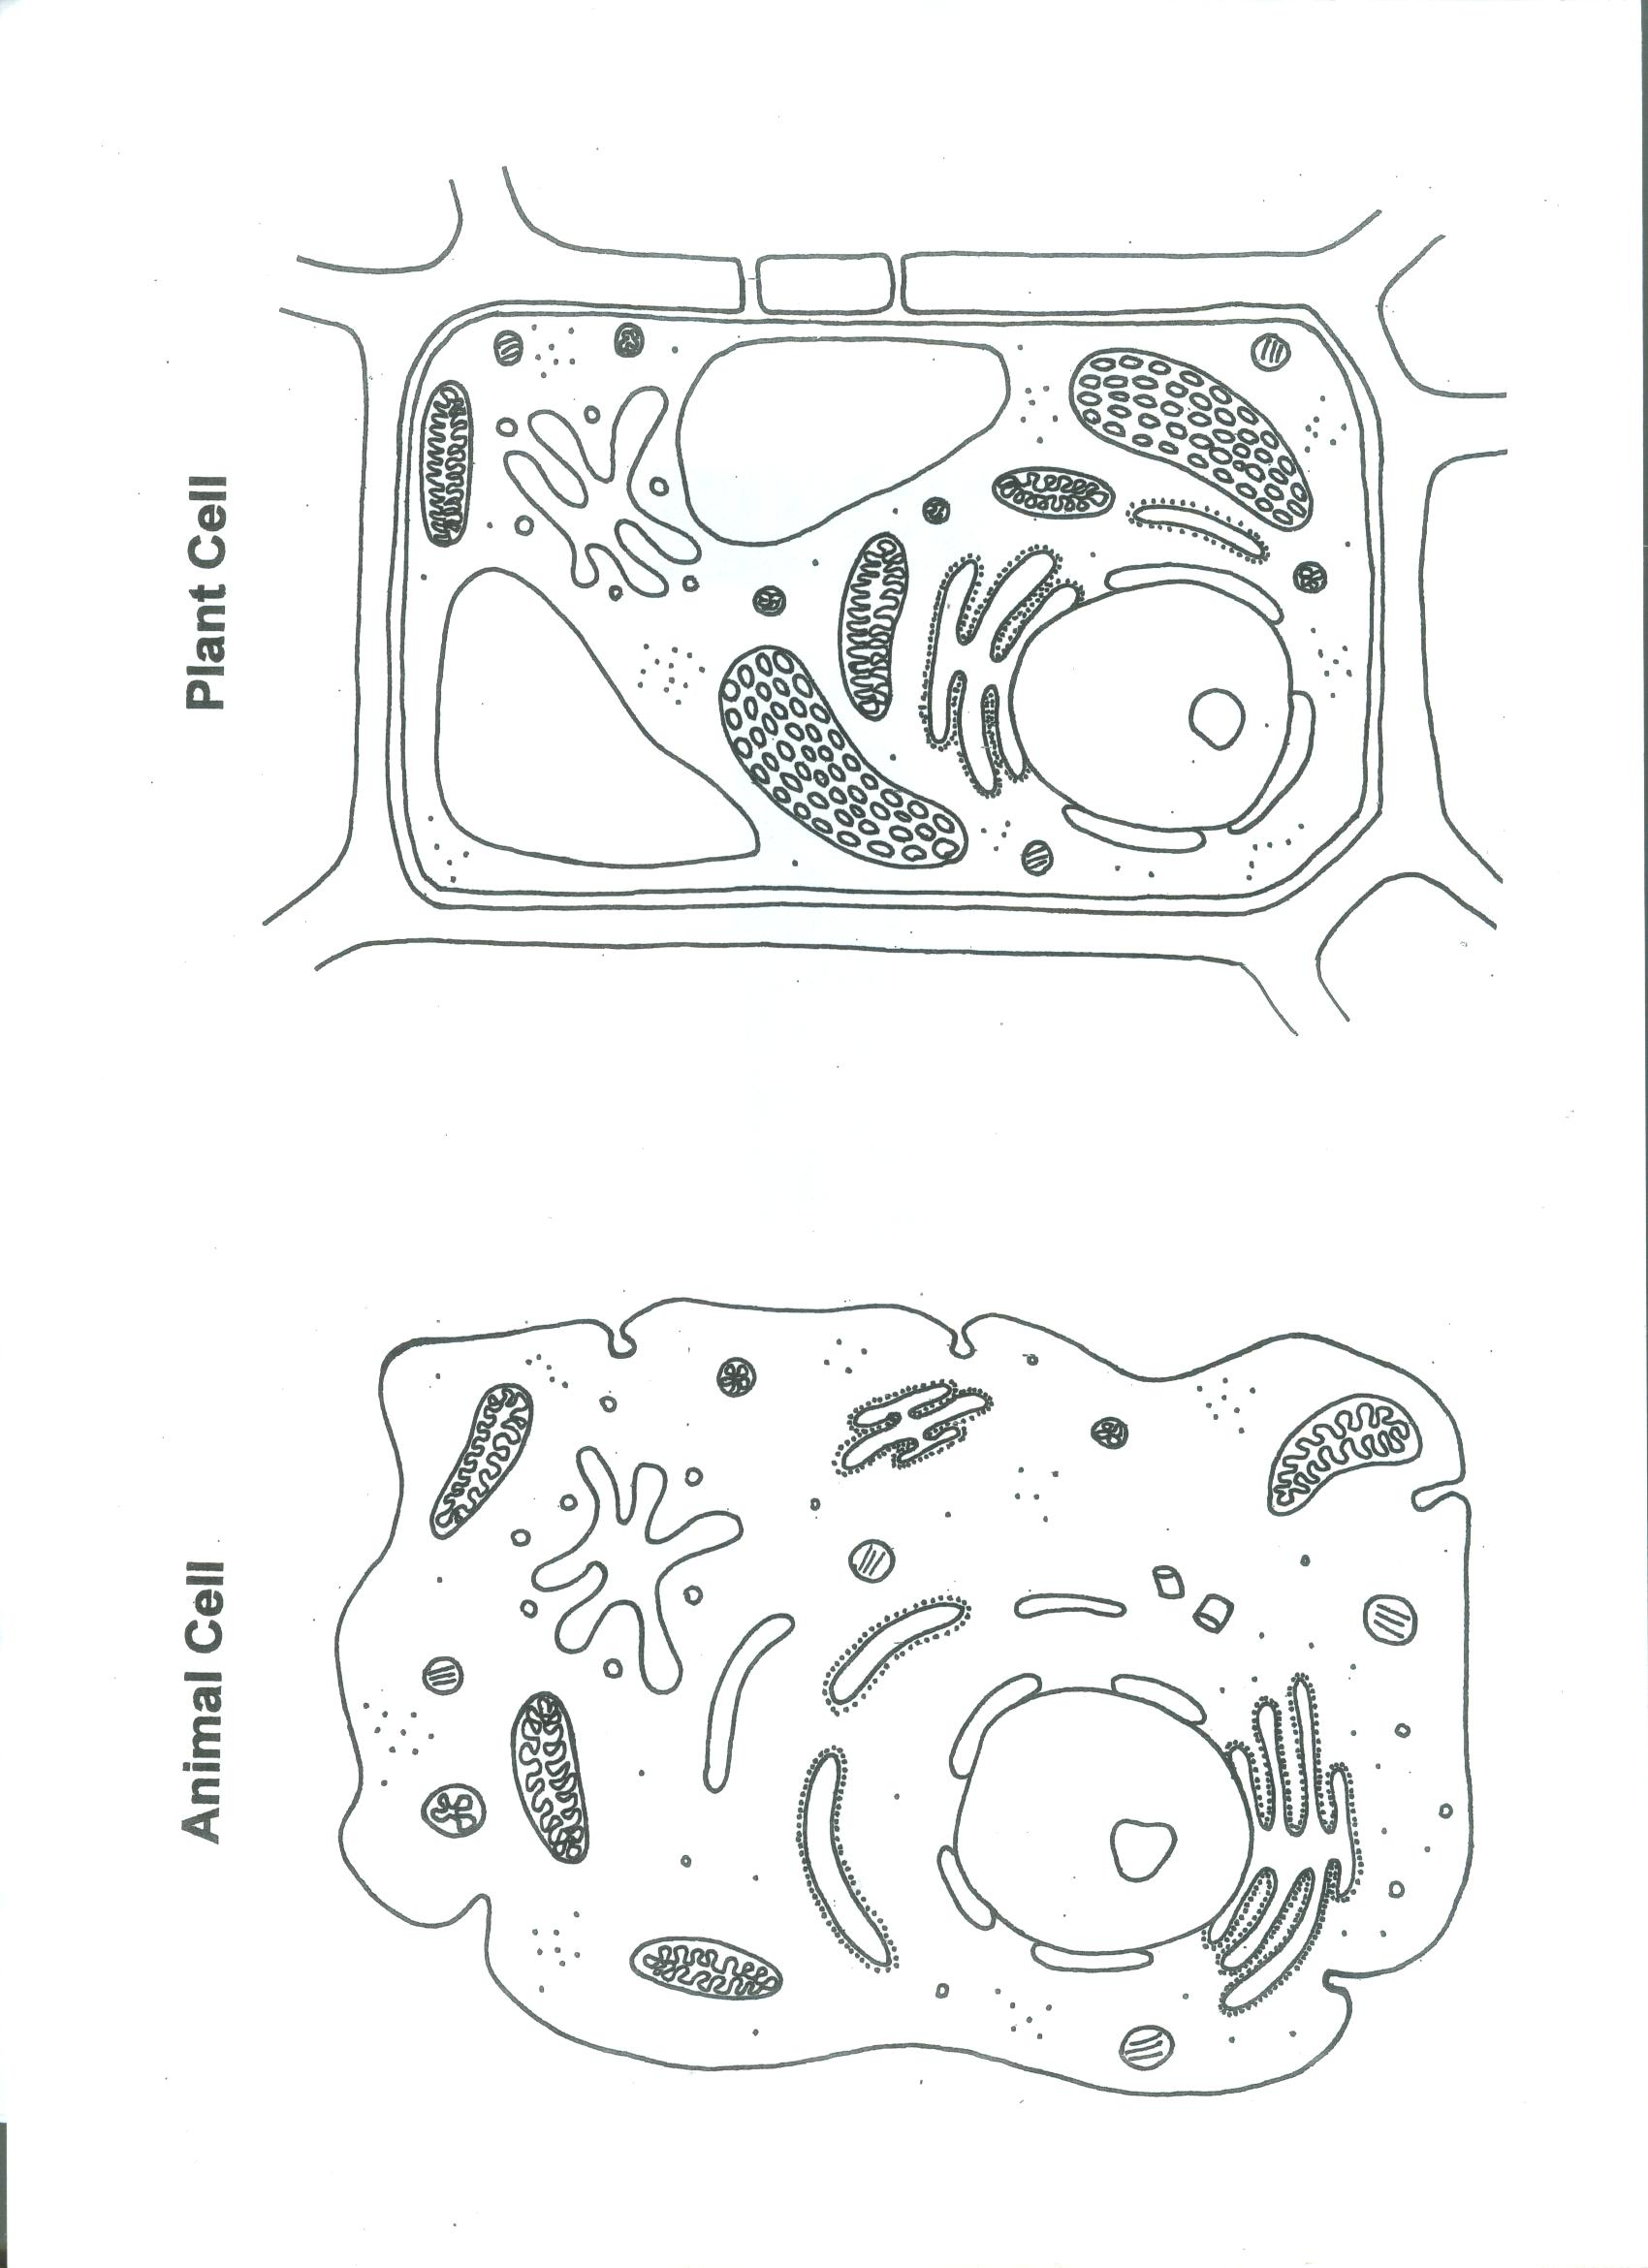 Printables Plant Cell Coloring Worksheet Jigglist Thousands of – Plant Cell Diagram Worksheet